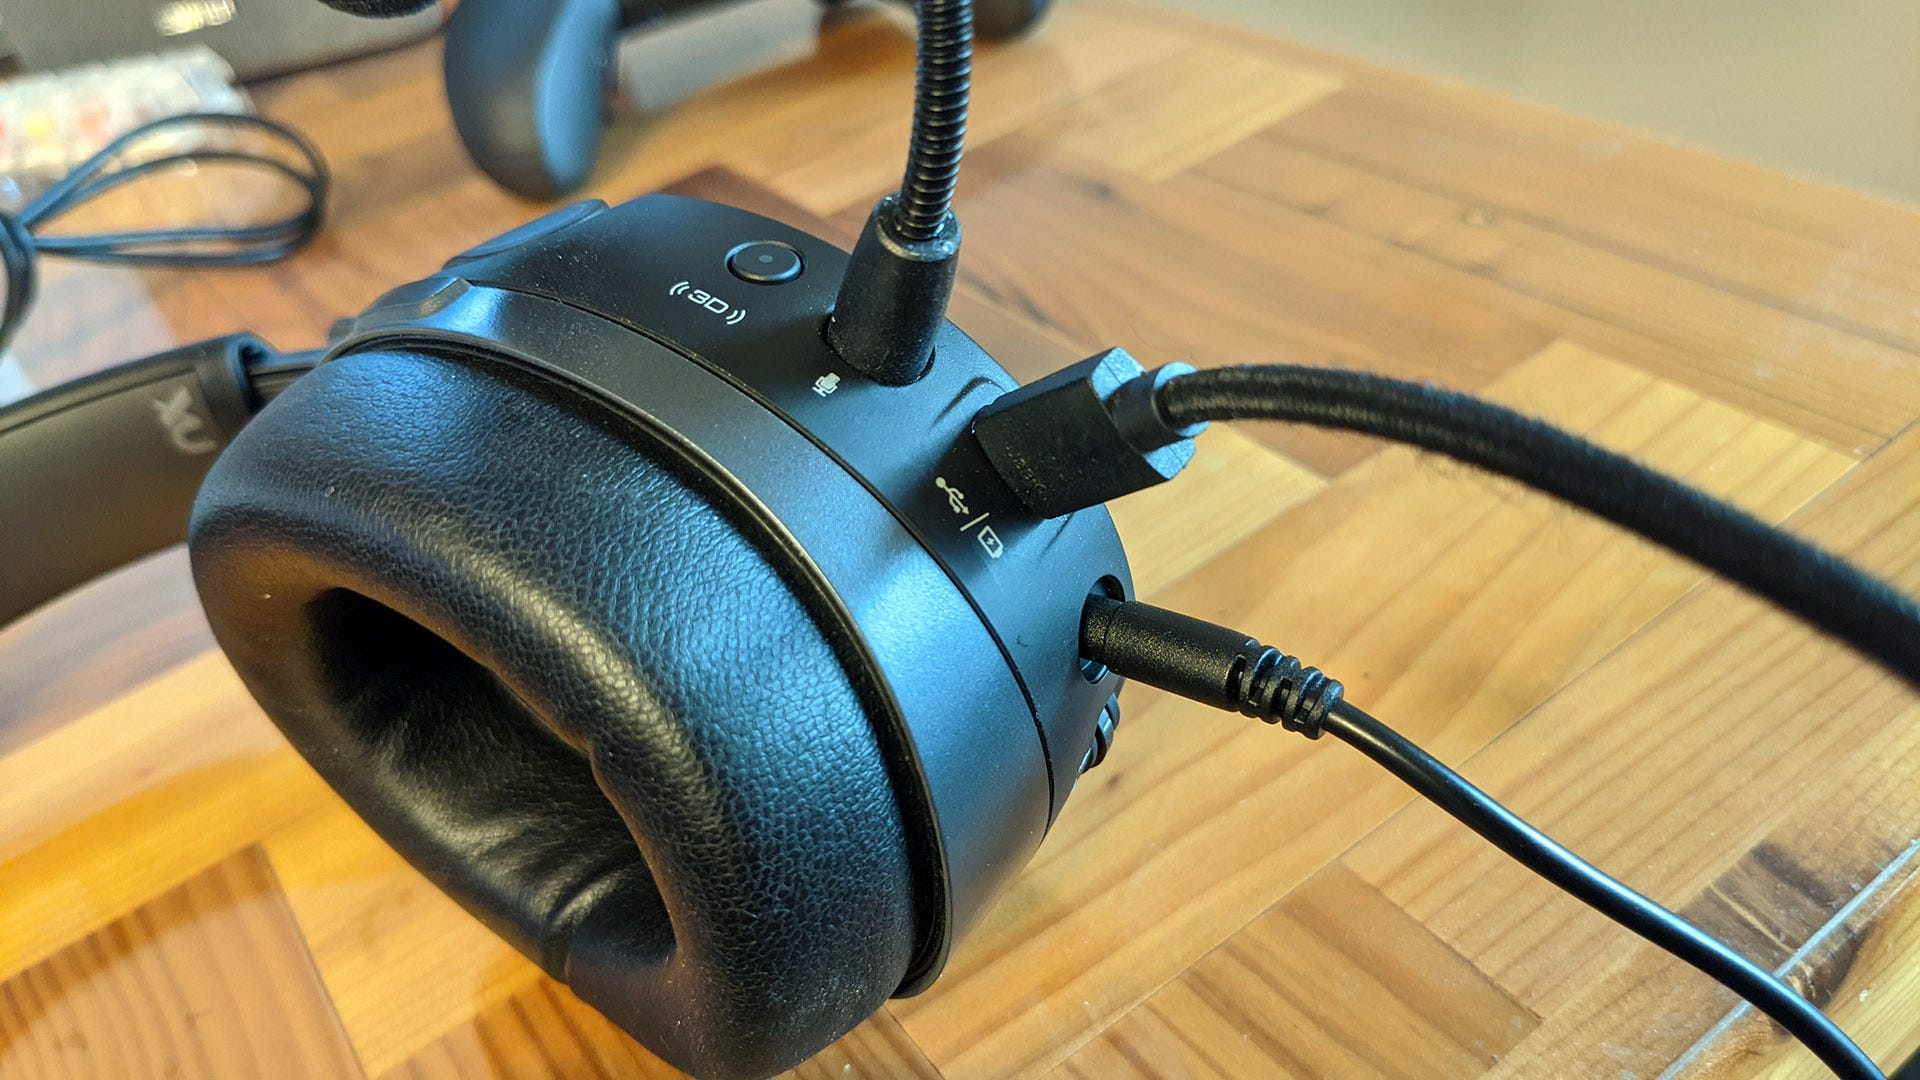 Audeze Mobius with cables attached